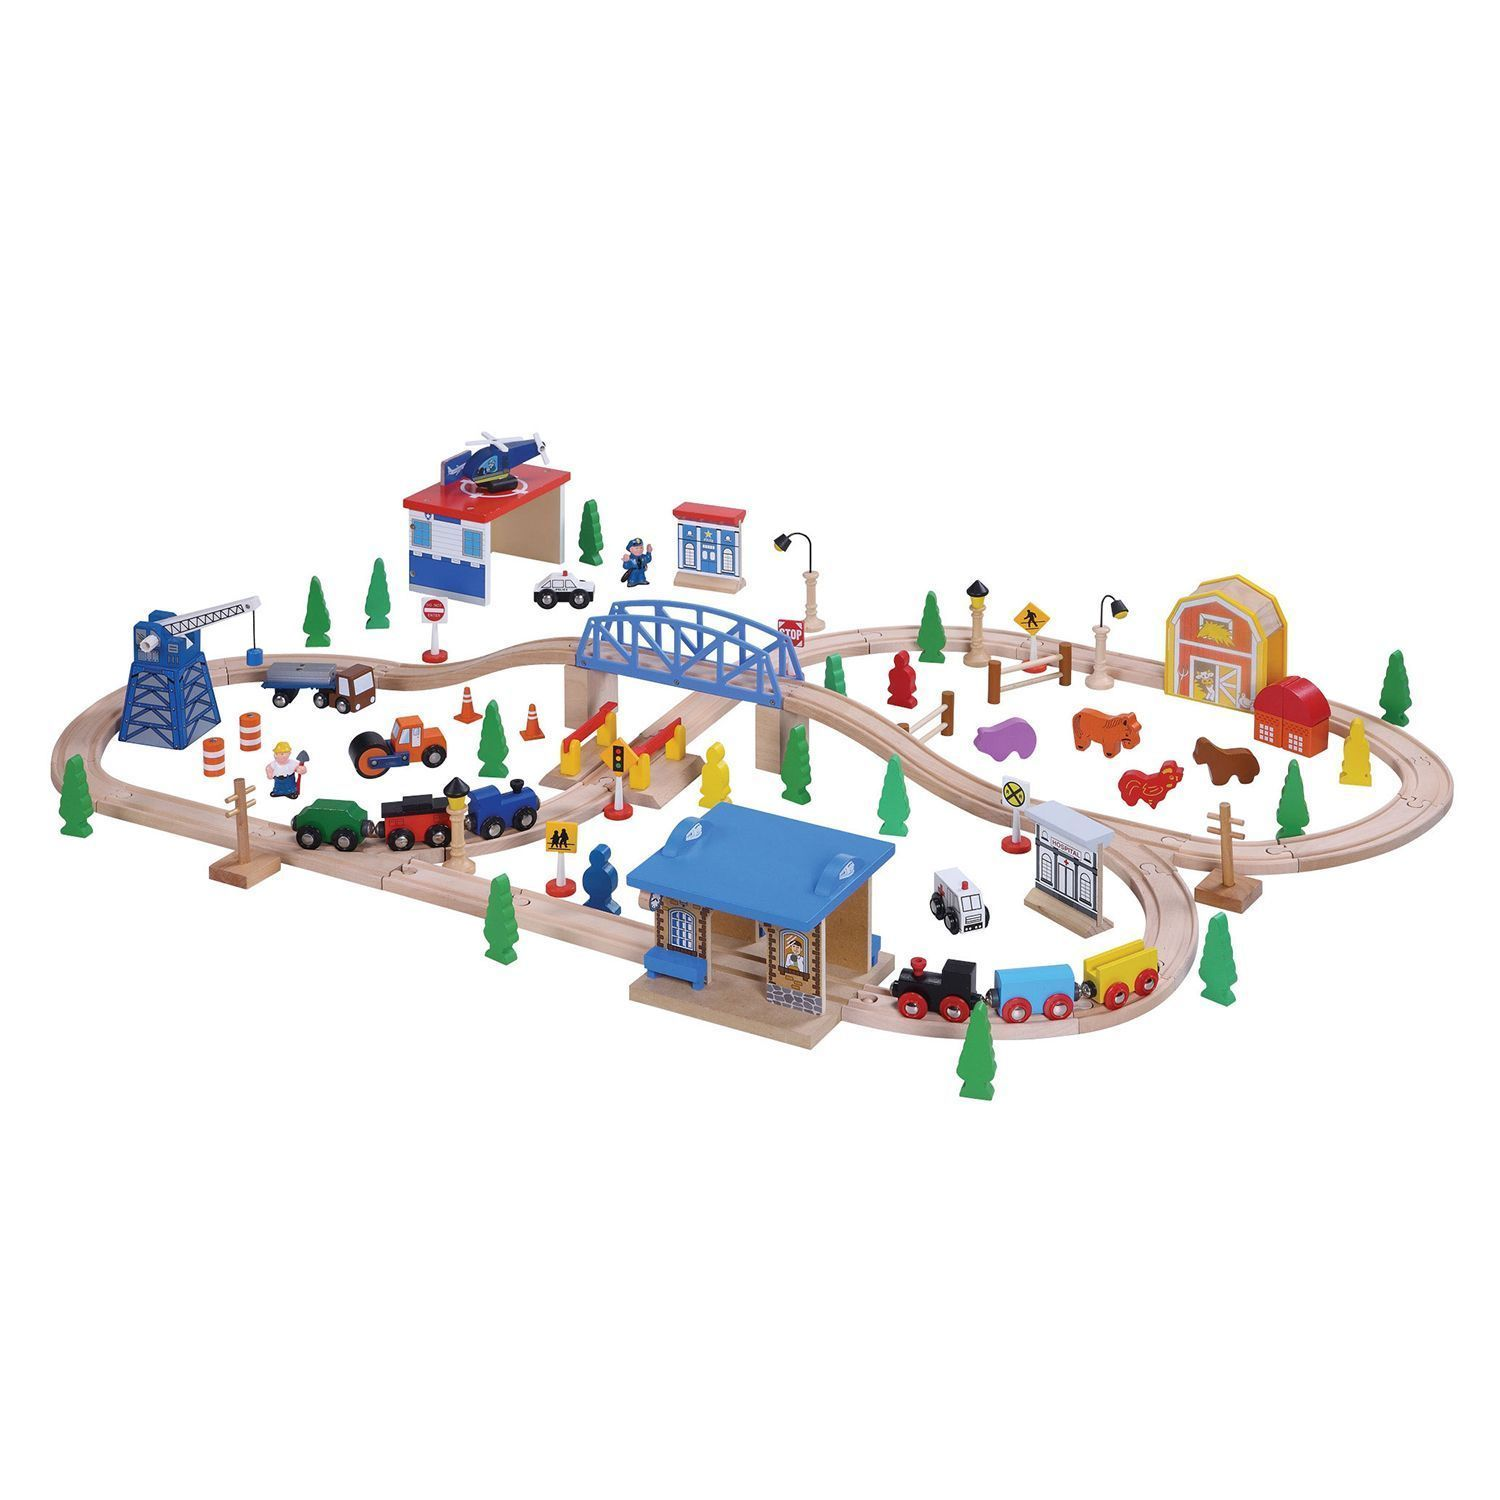 Brio patible Thomas And Friends Wooden Railway